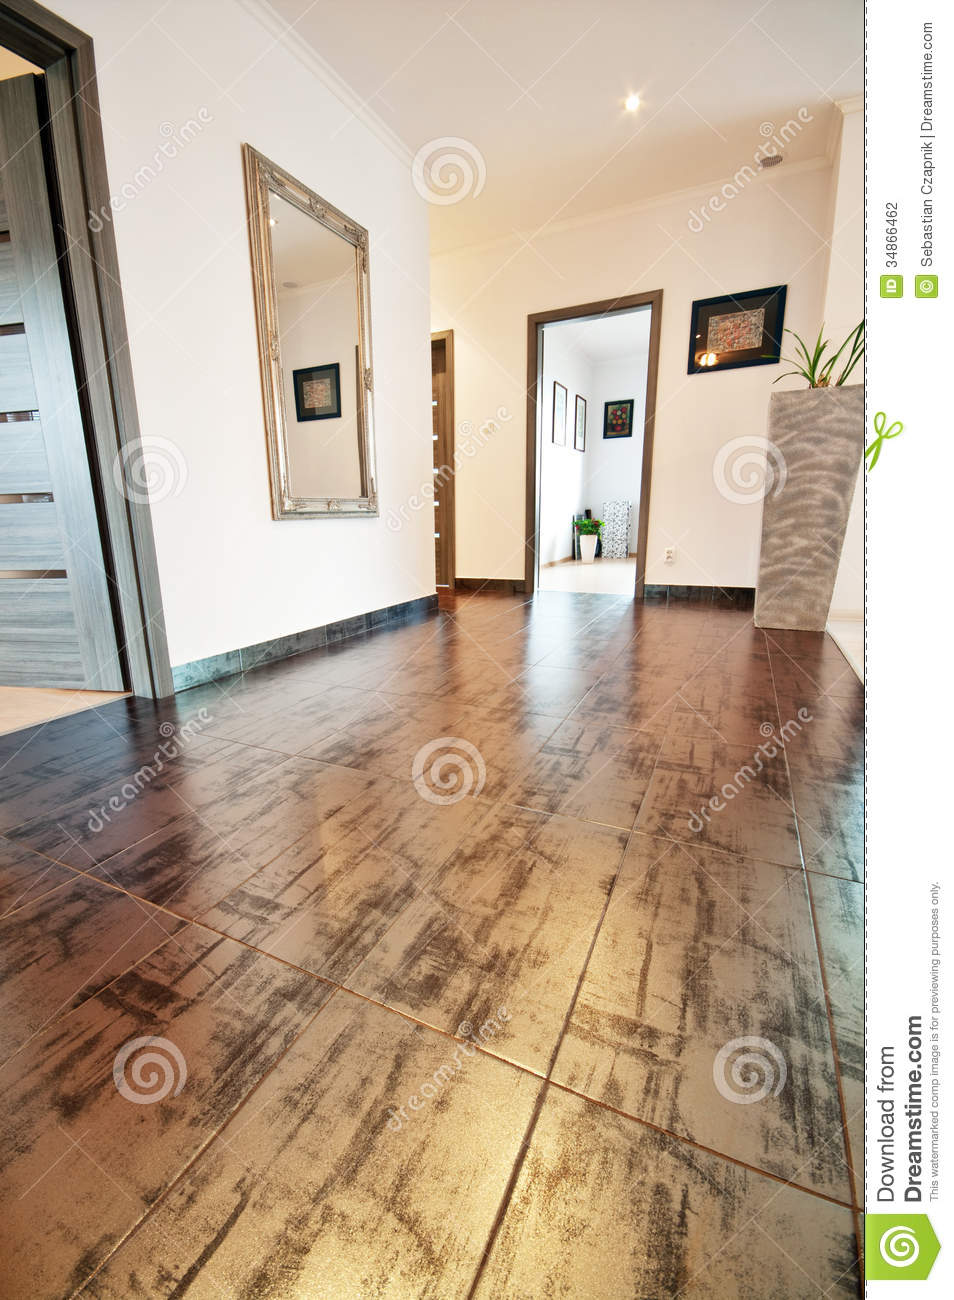 Flor tiel in house fantastic home design hall with decorative floor tiles stock photography image 34866462 dailygadgetfo Choice Image